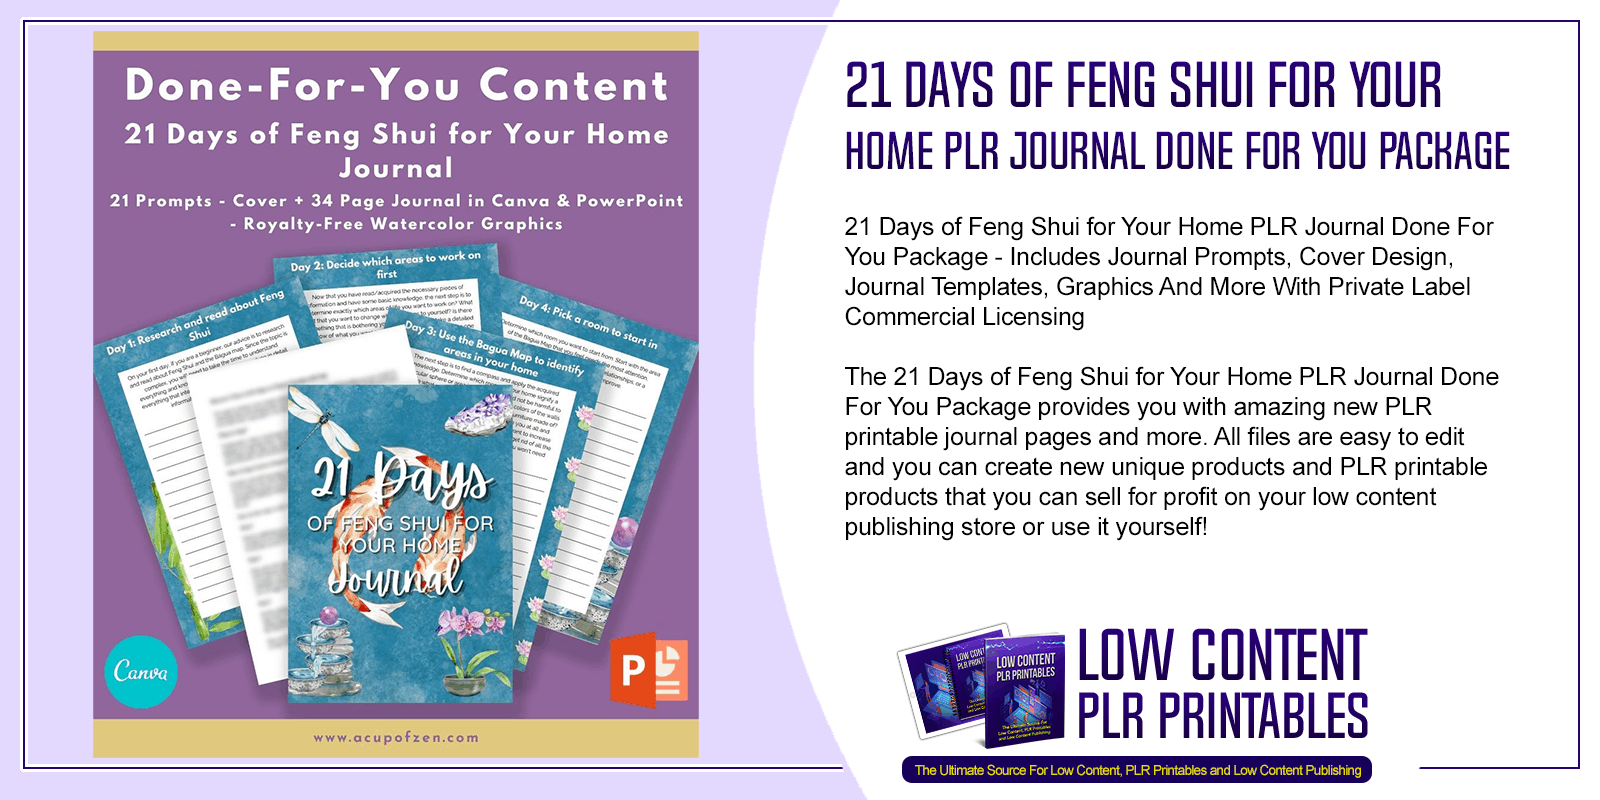 21 Days of Feng Shui for Your Home PLR Journal Done For You Package